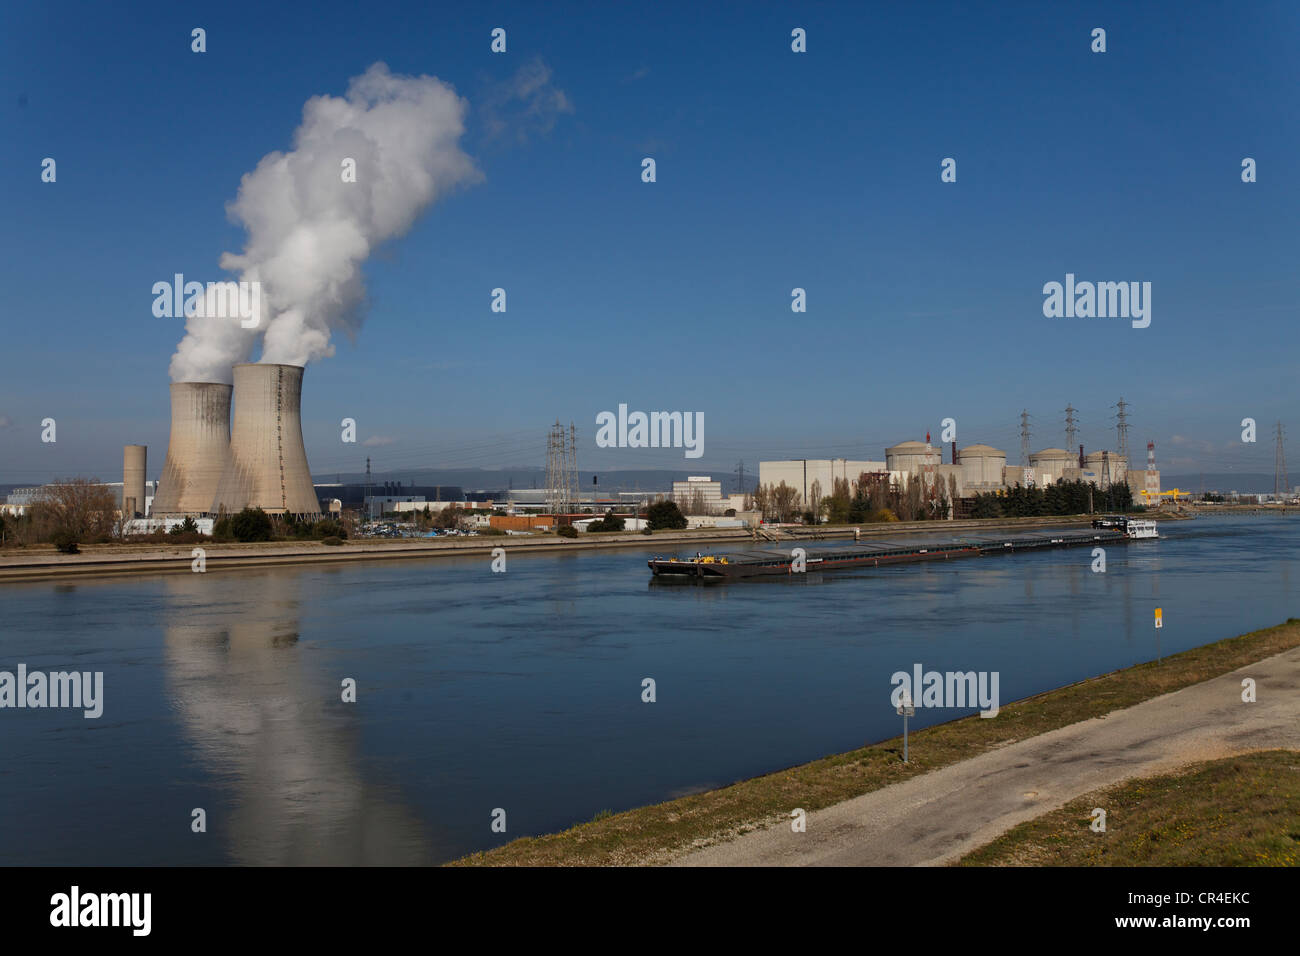 St Paul Trois Chateaux, Tricastin industrial and nuclear site, Bollene industrial site, Drome, France, Europe - Stock Image